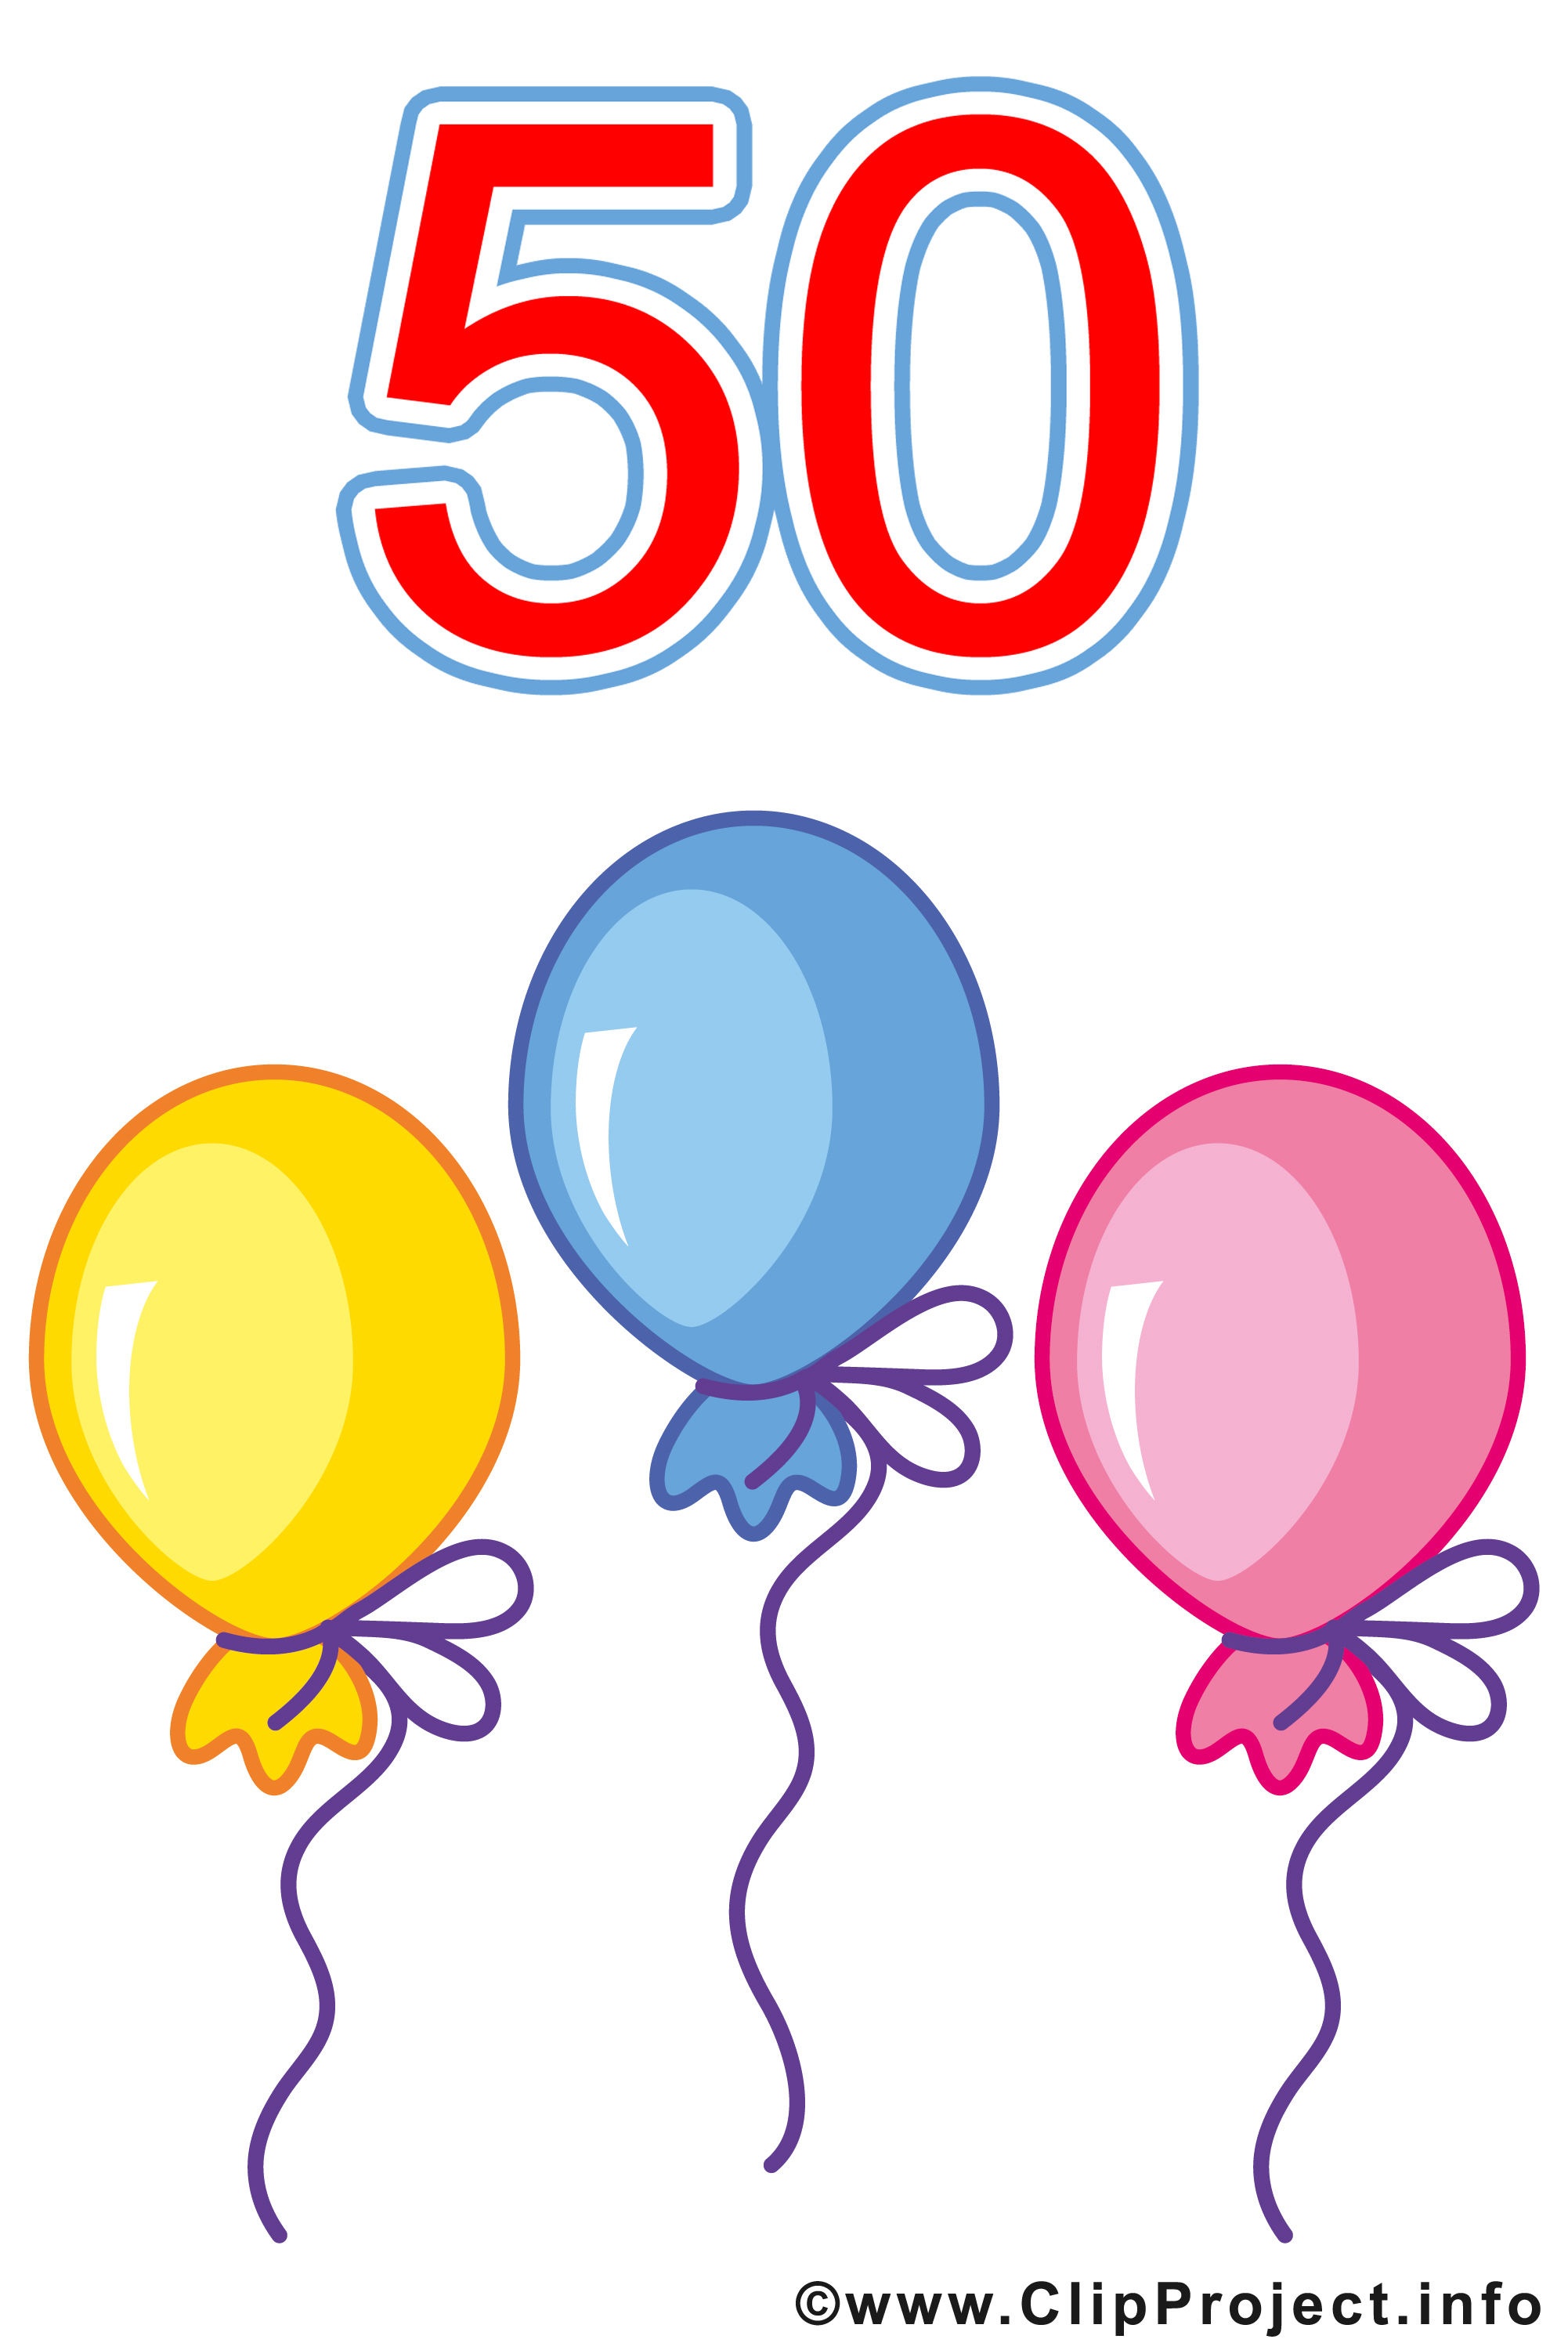 Cliparts geburtstag 50 banner black and white stock 50 Geburtstag Bilder gratis banner black and white stock